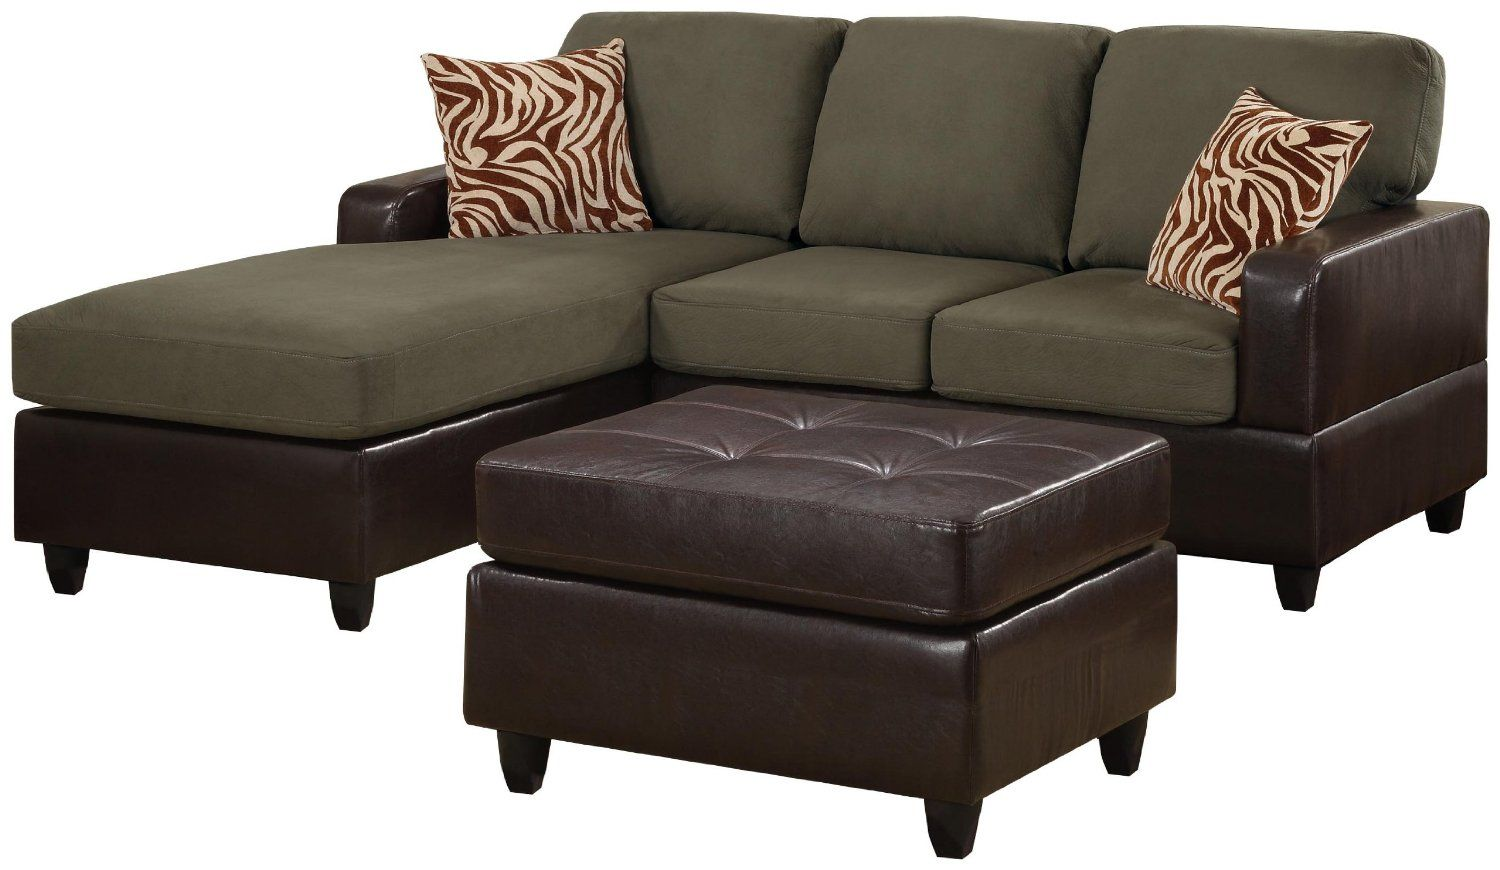 Amazon.com - Bobkona Manhattan Reversible Microfiber 3-Piece Sectional Sofa with Faux Leather Ottoman in Sage Color